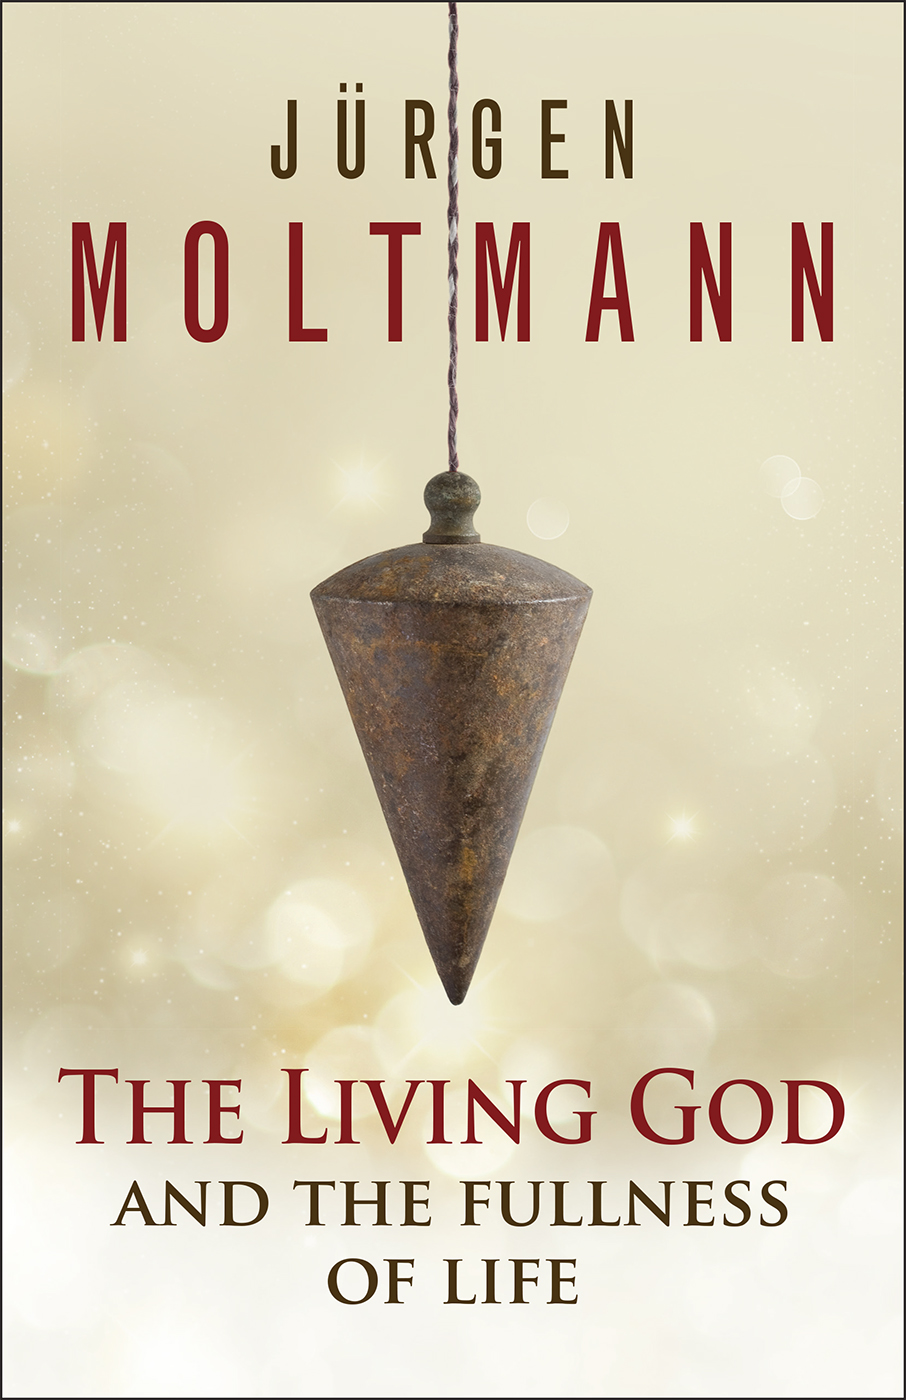 The Living God and the Fullness of Life